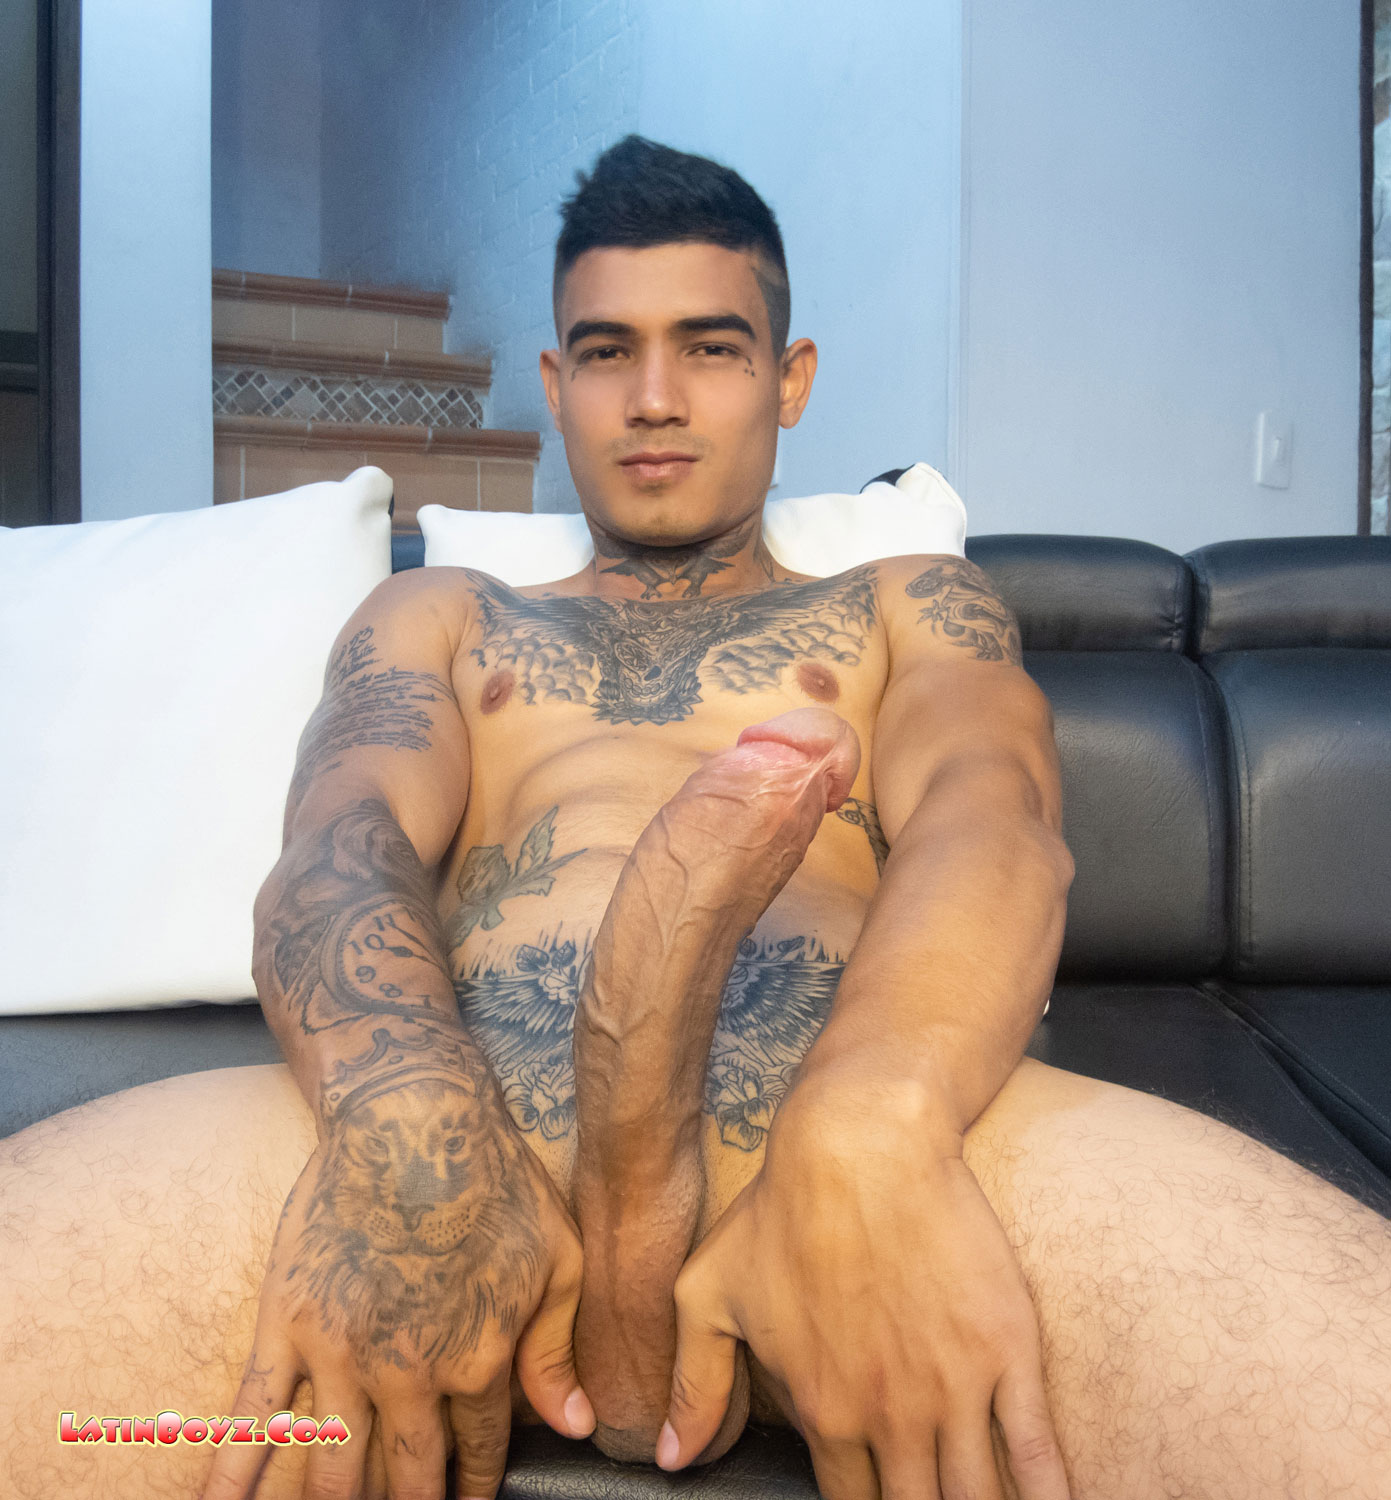 Latino male model naked nude pic does